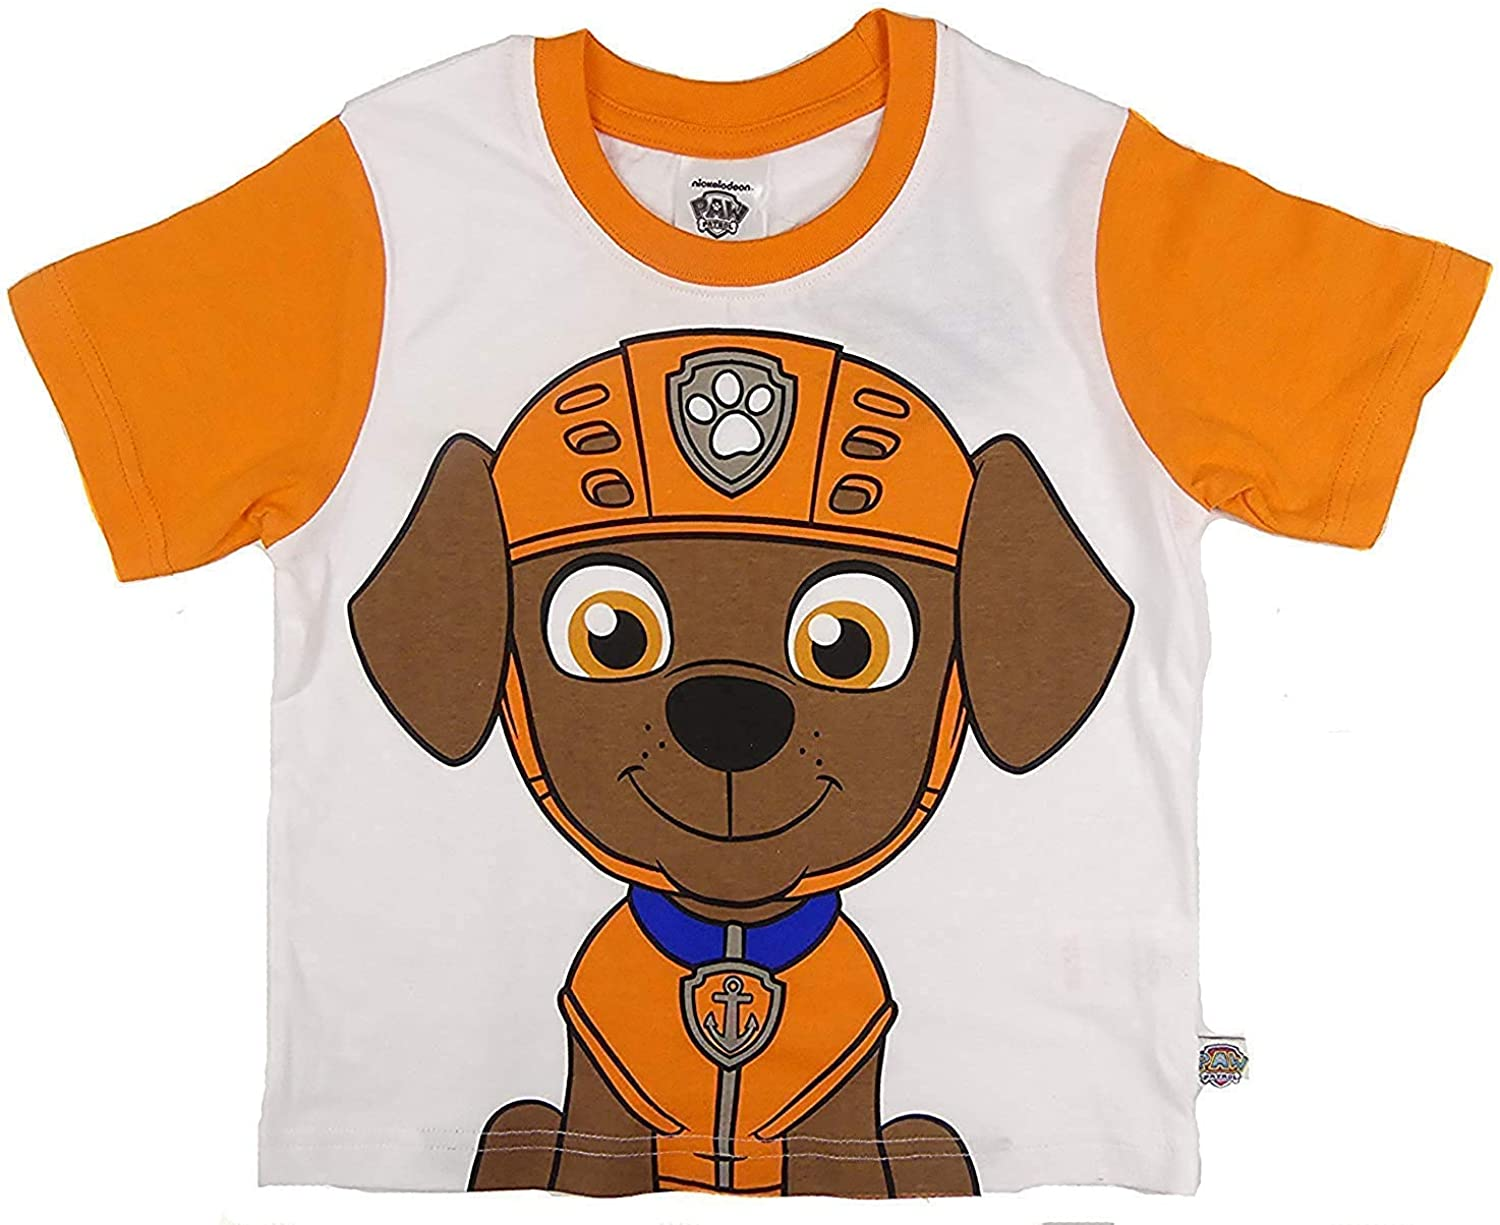 Paw Patrol T-Shirts Marshall Chase Zuma Or Rocky Four To Choose From 2-3 To 6-7Y